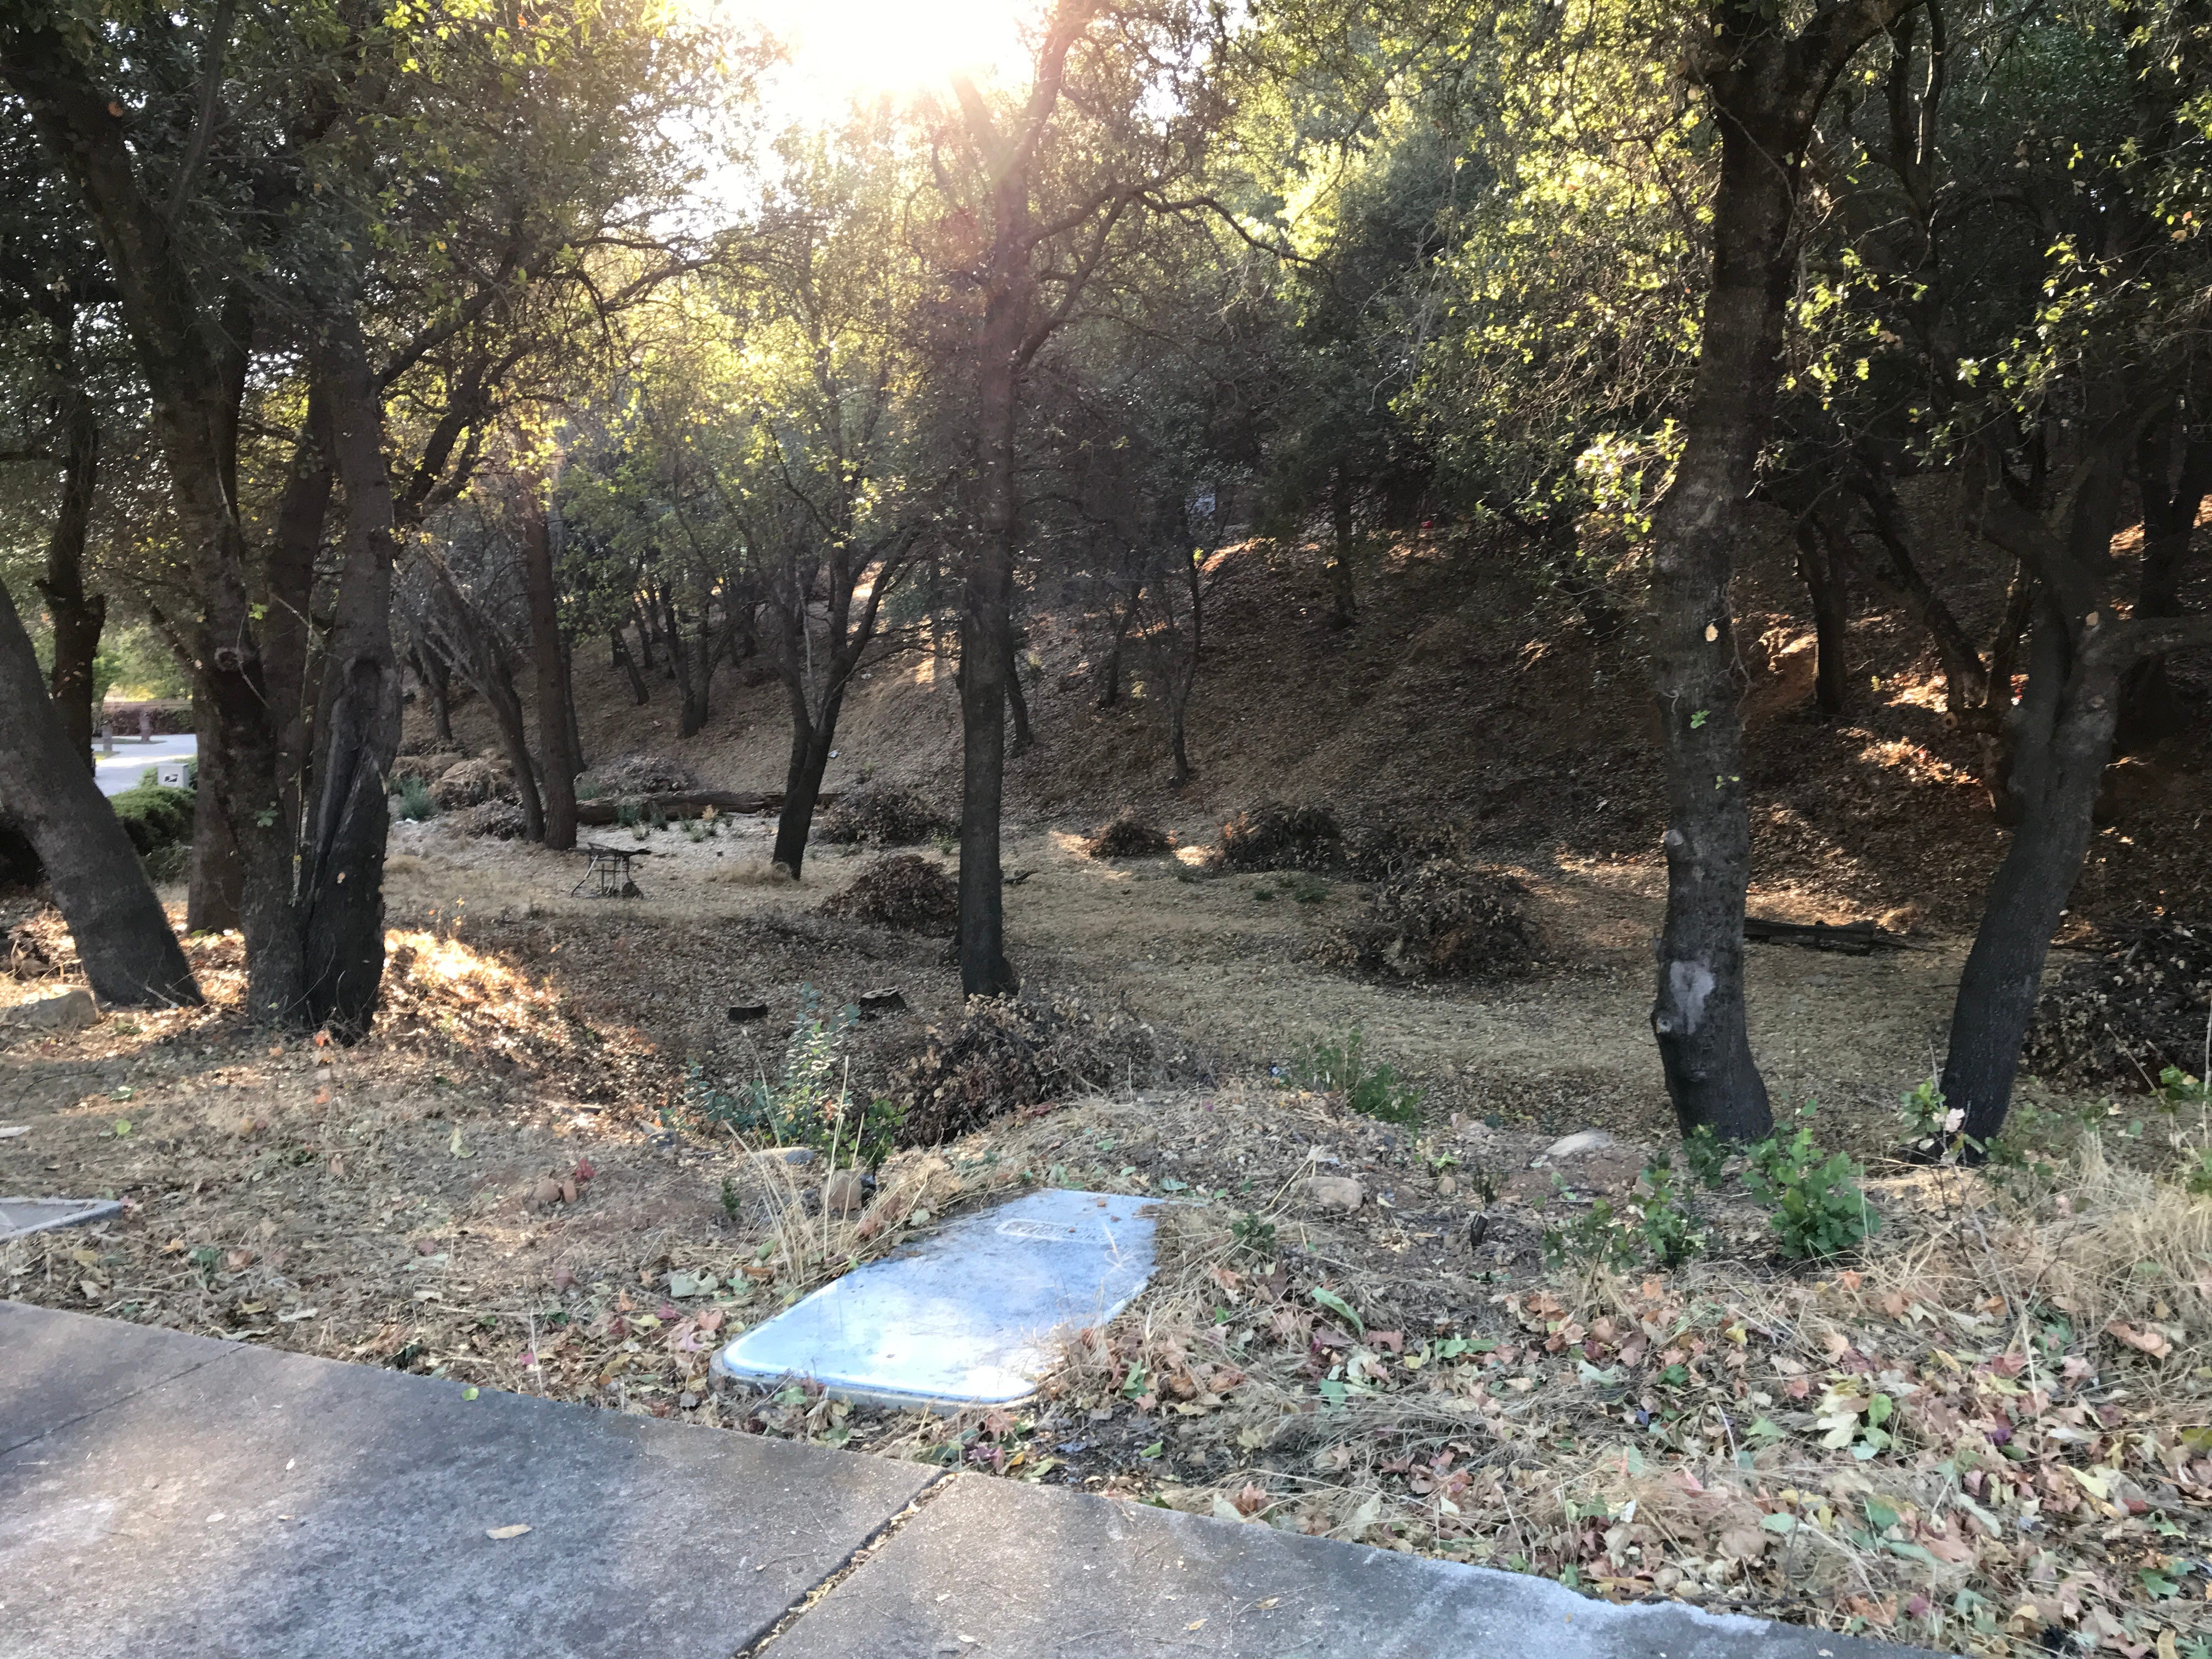 Piles remain in October after crews cut brush at a 4-acre piece of city-owned open space at Bramble Place and Victor Avenue. The plan is to burn the piles once fire season is over.